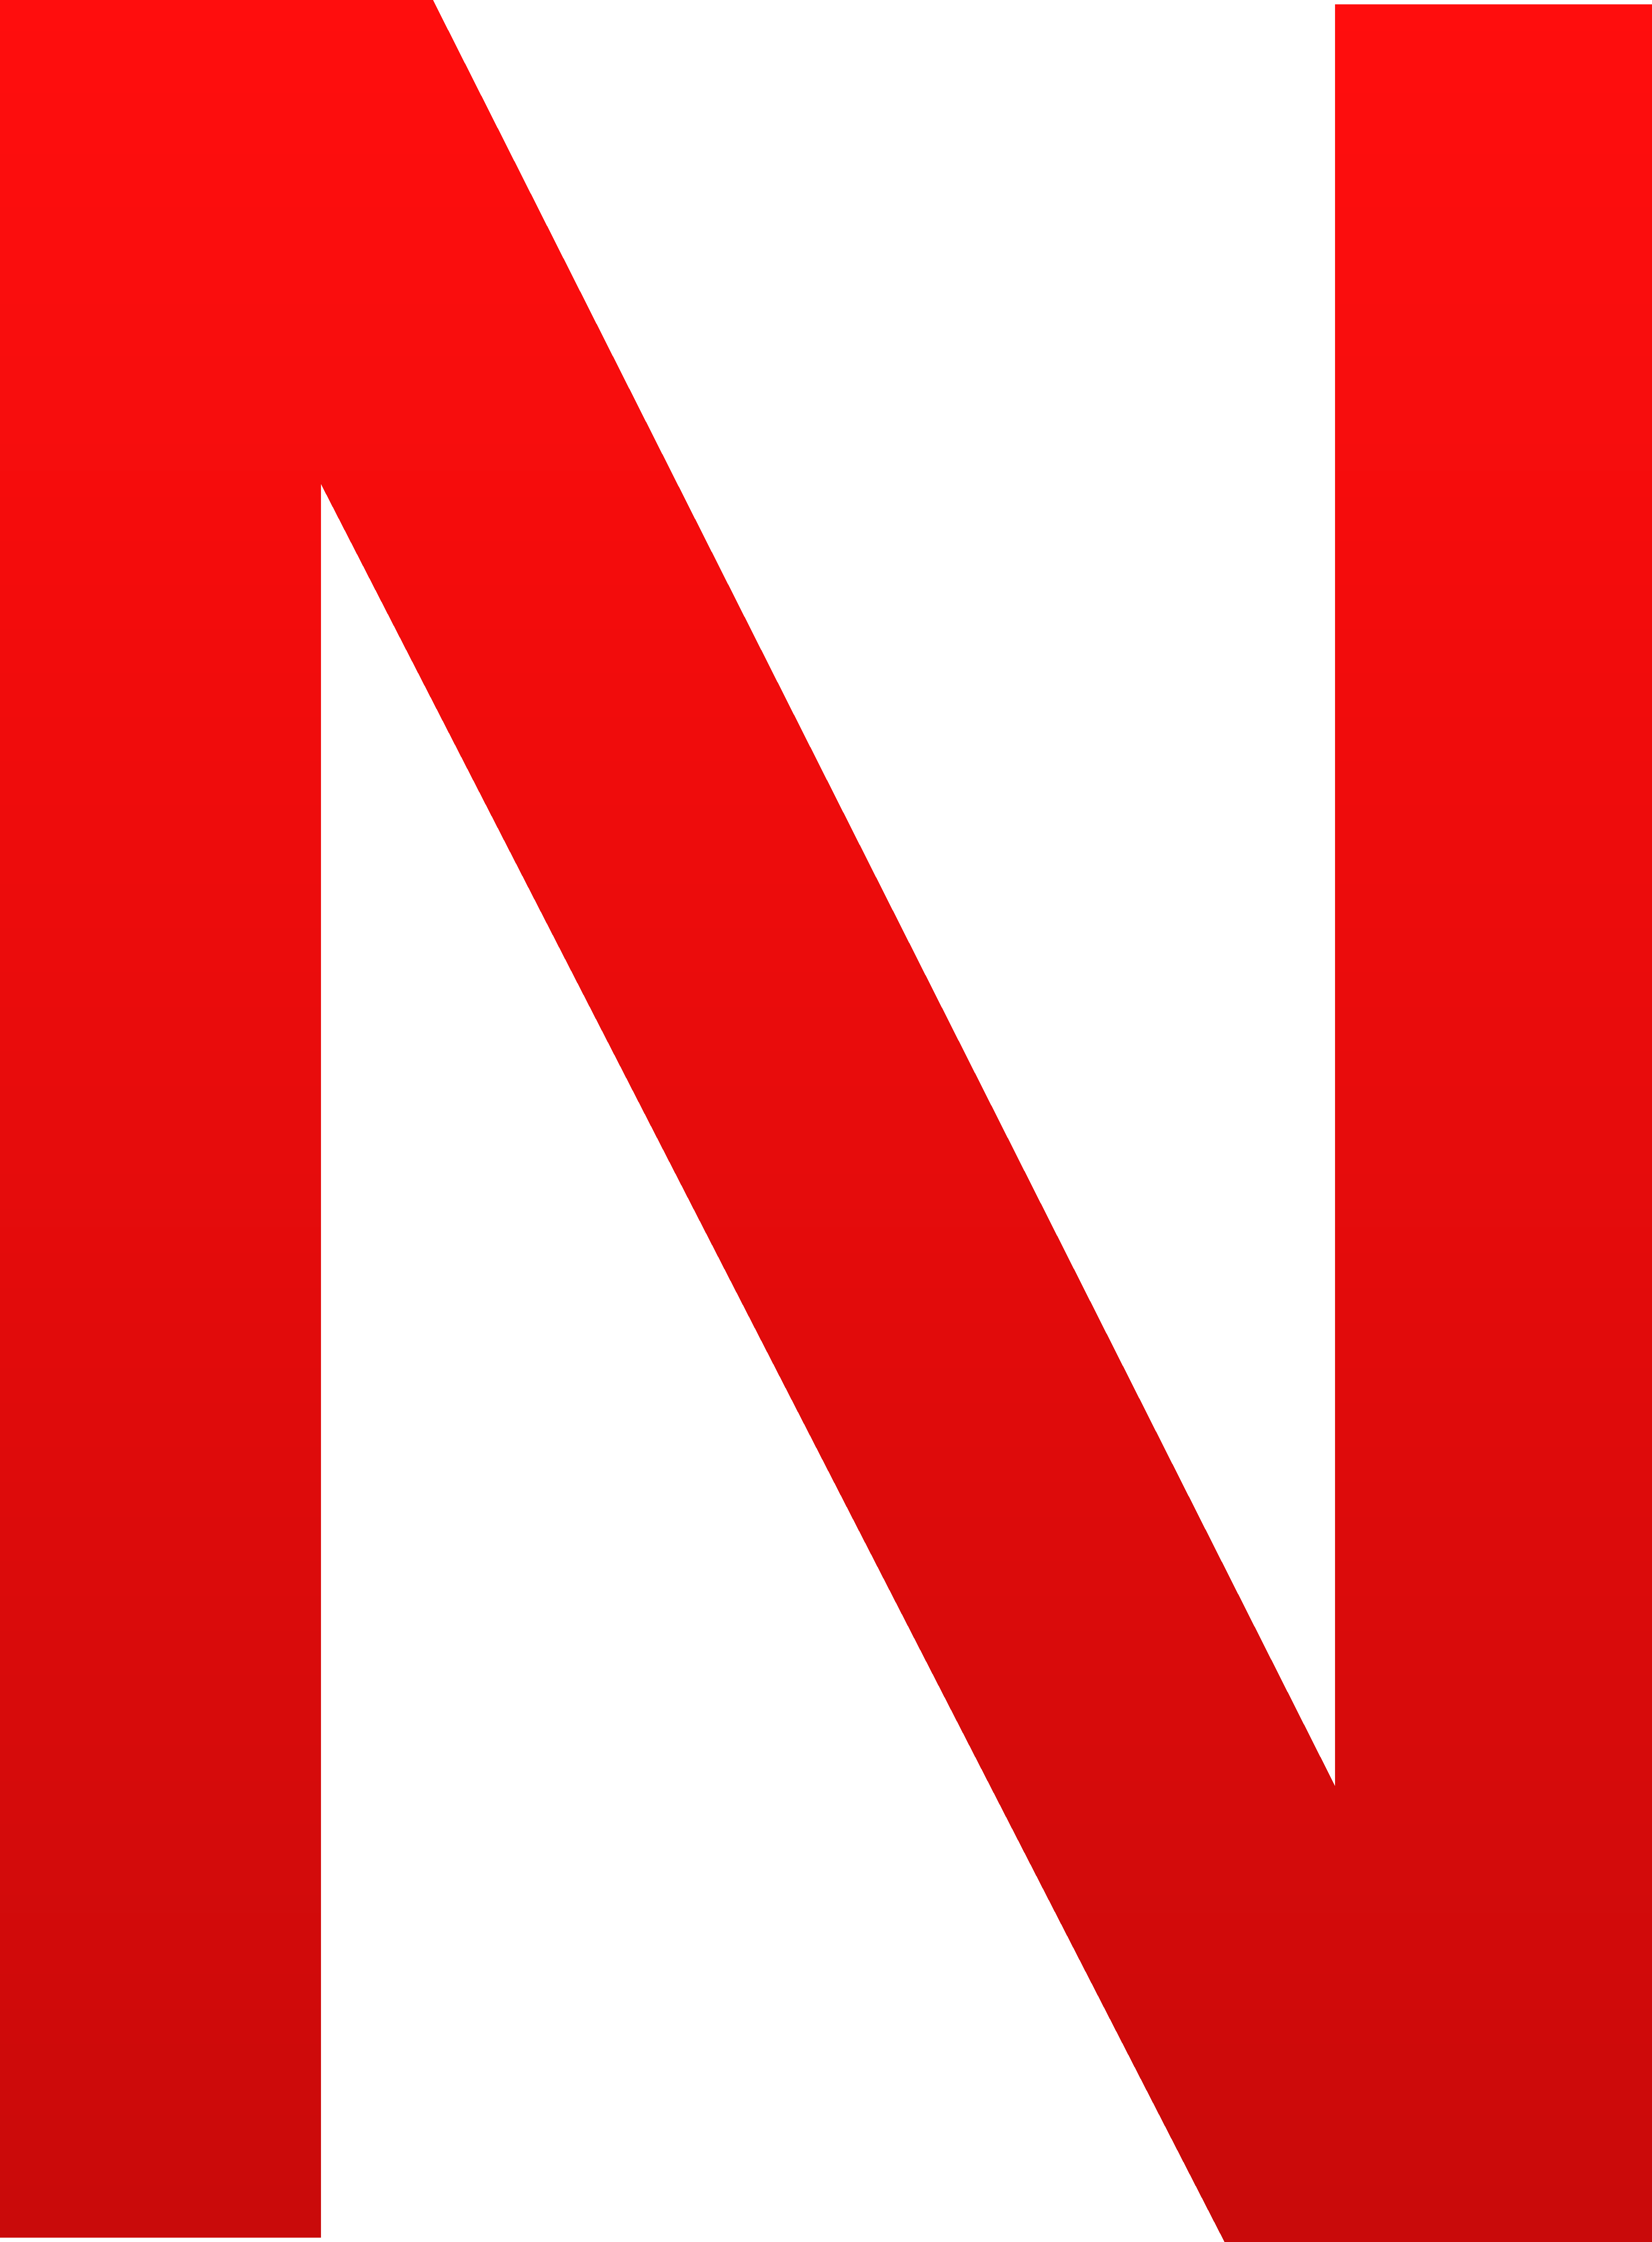 The Letter N.